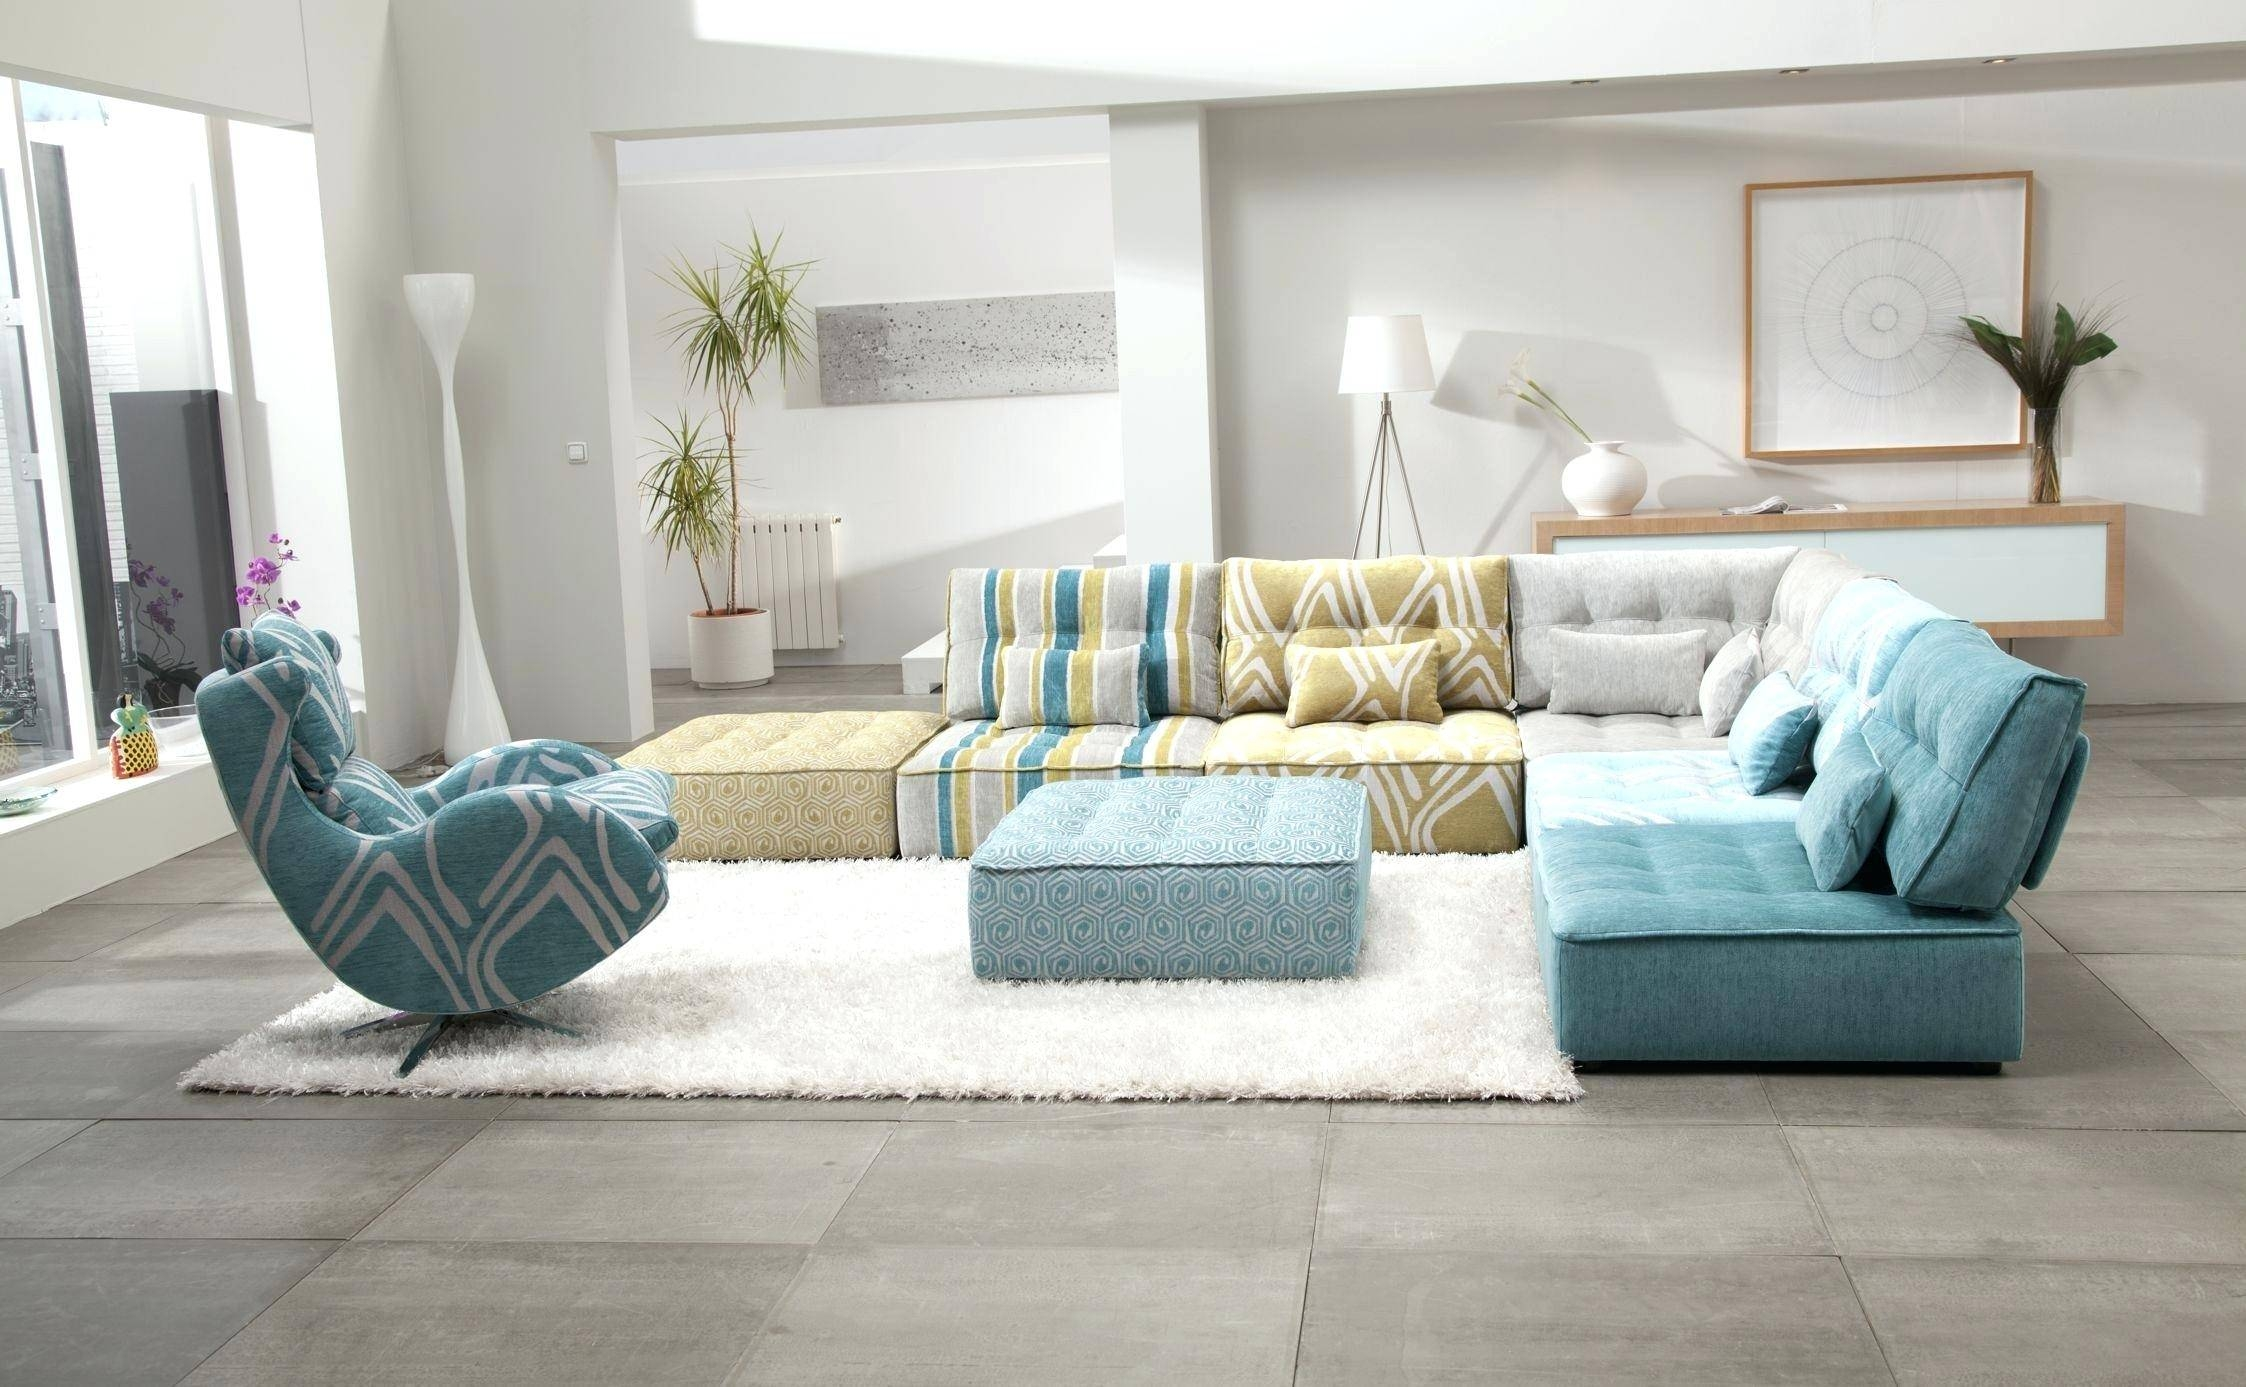 Comfortable Low Floor Seating Furniture - Laferida | Floor for Comfortable Floor Seating (Image 15 of 30)